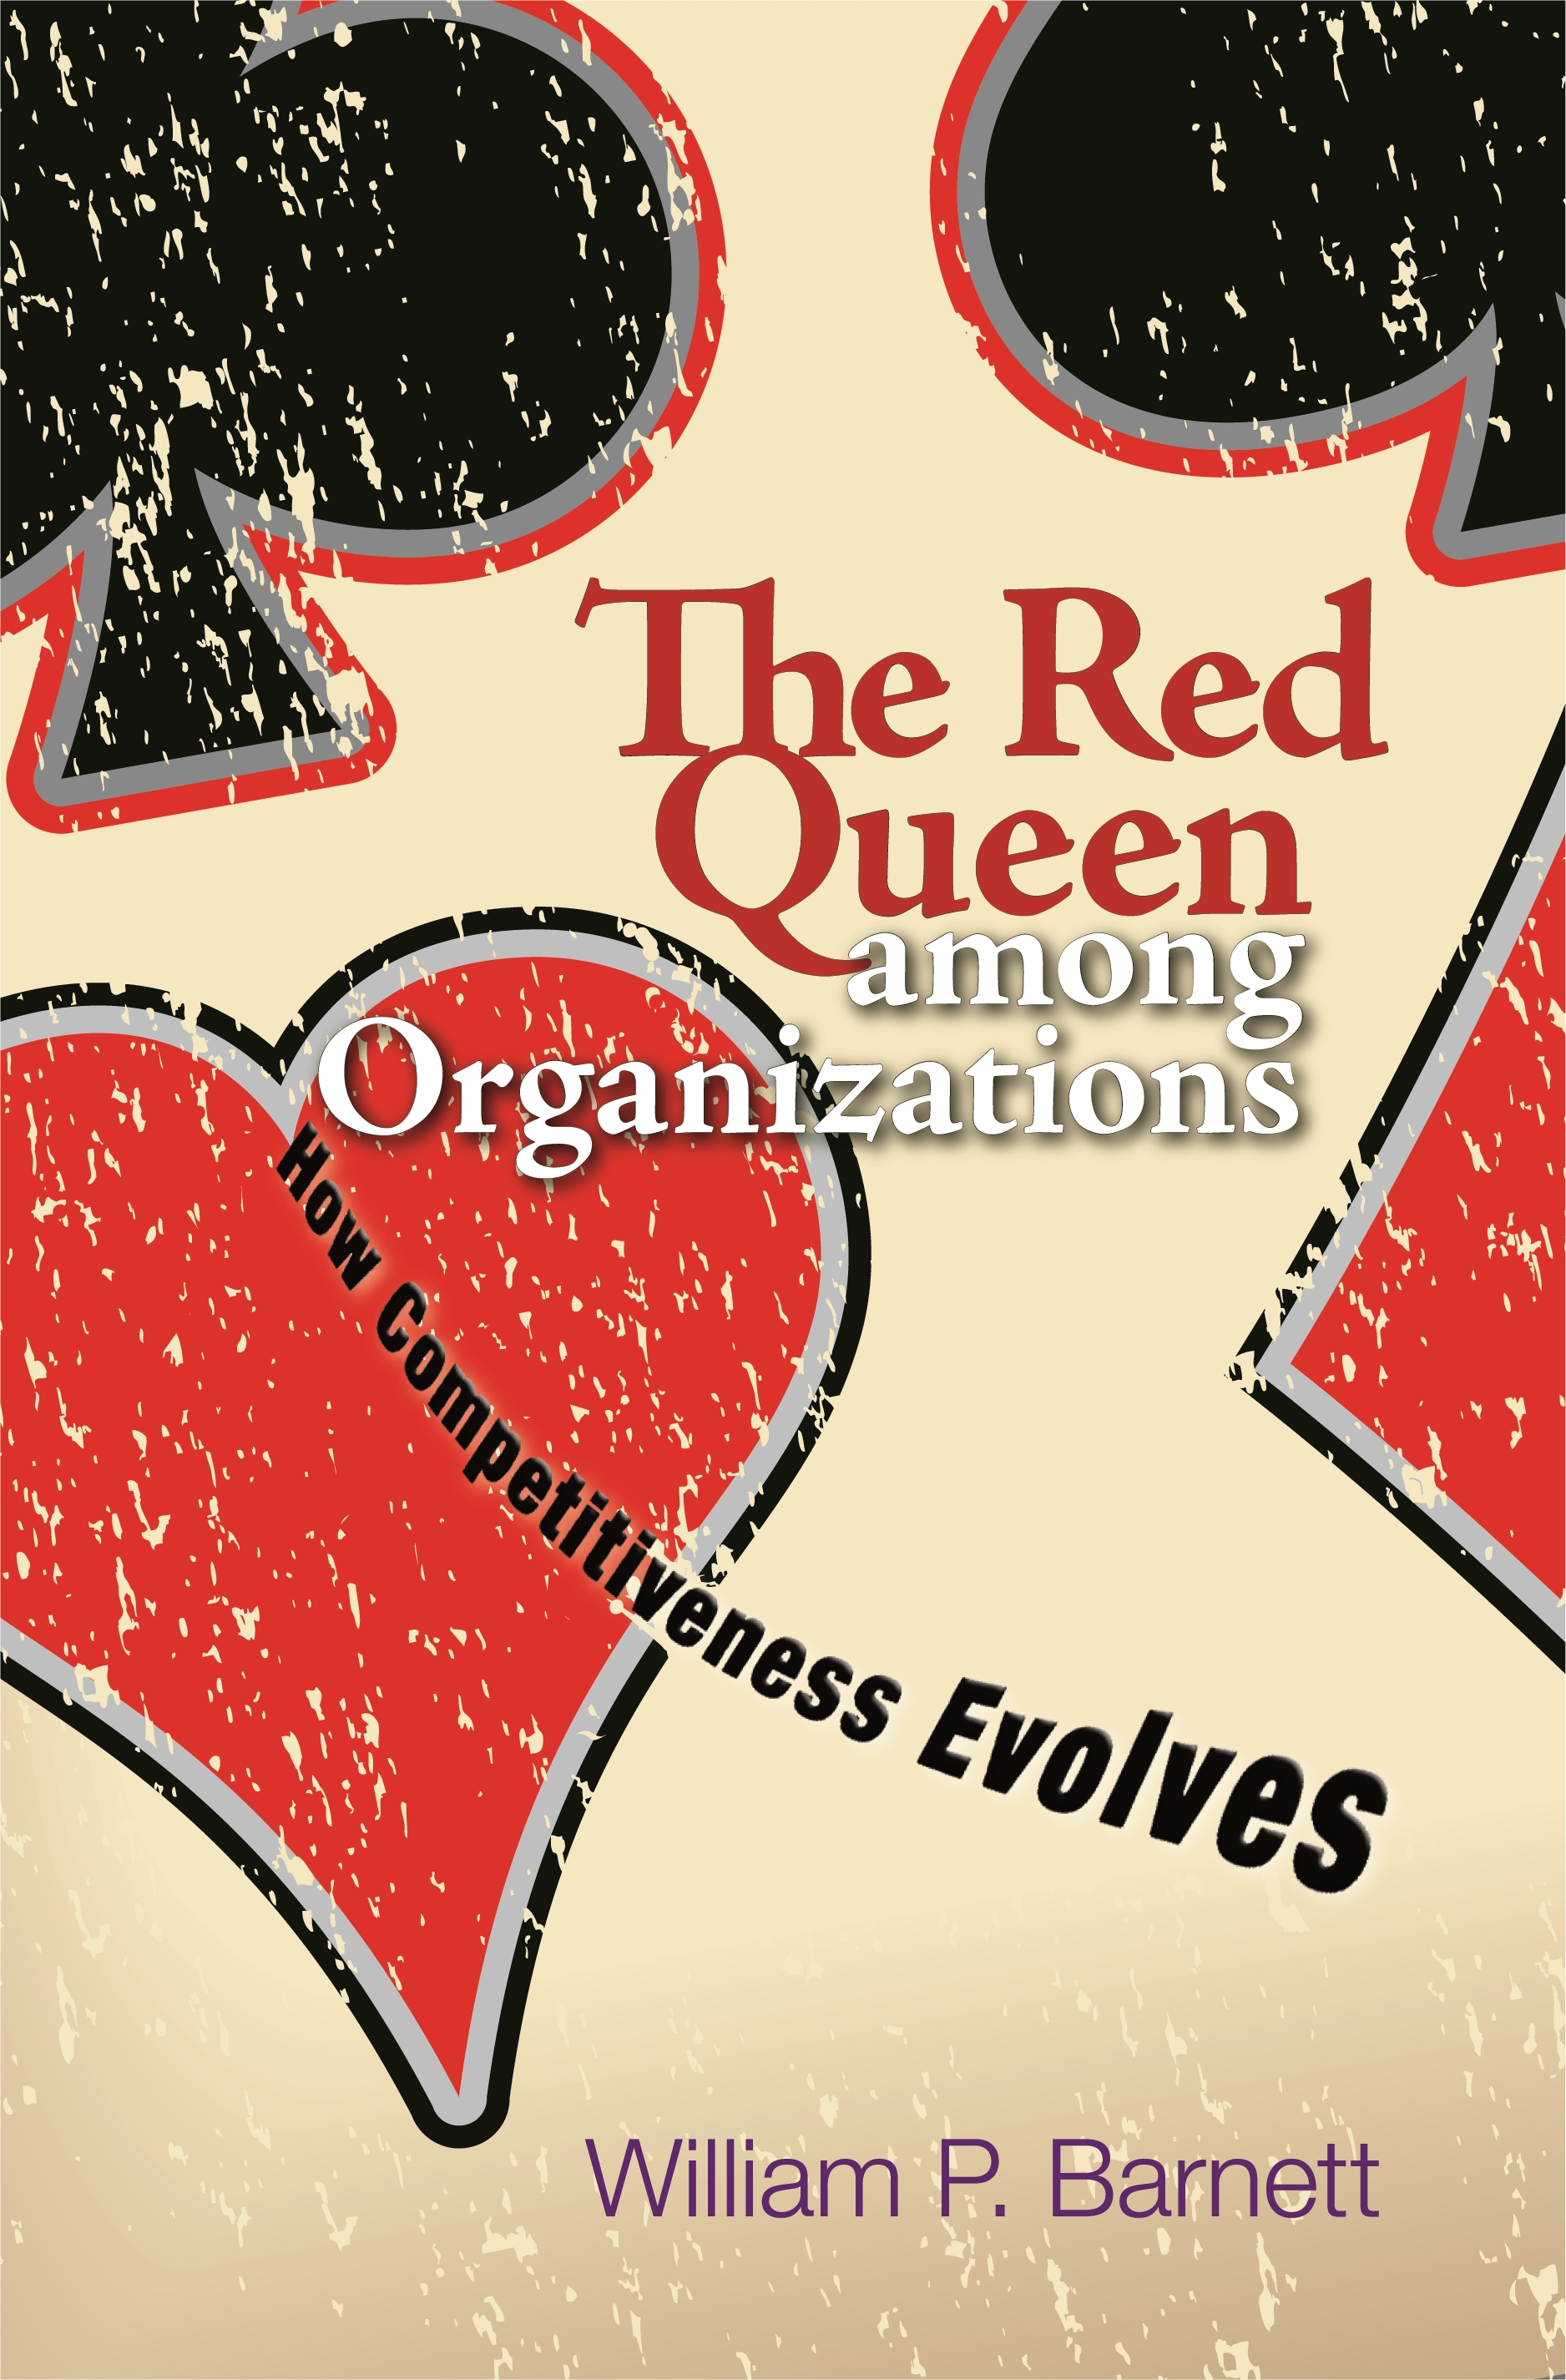 The Red Queen among Organizations